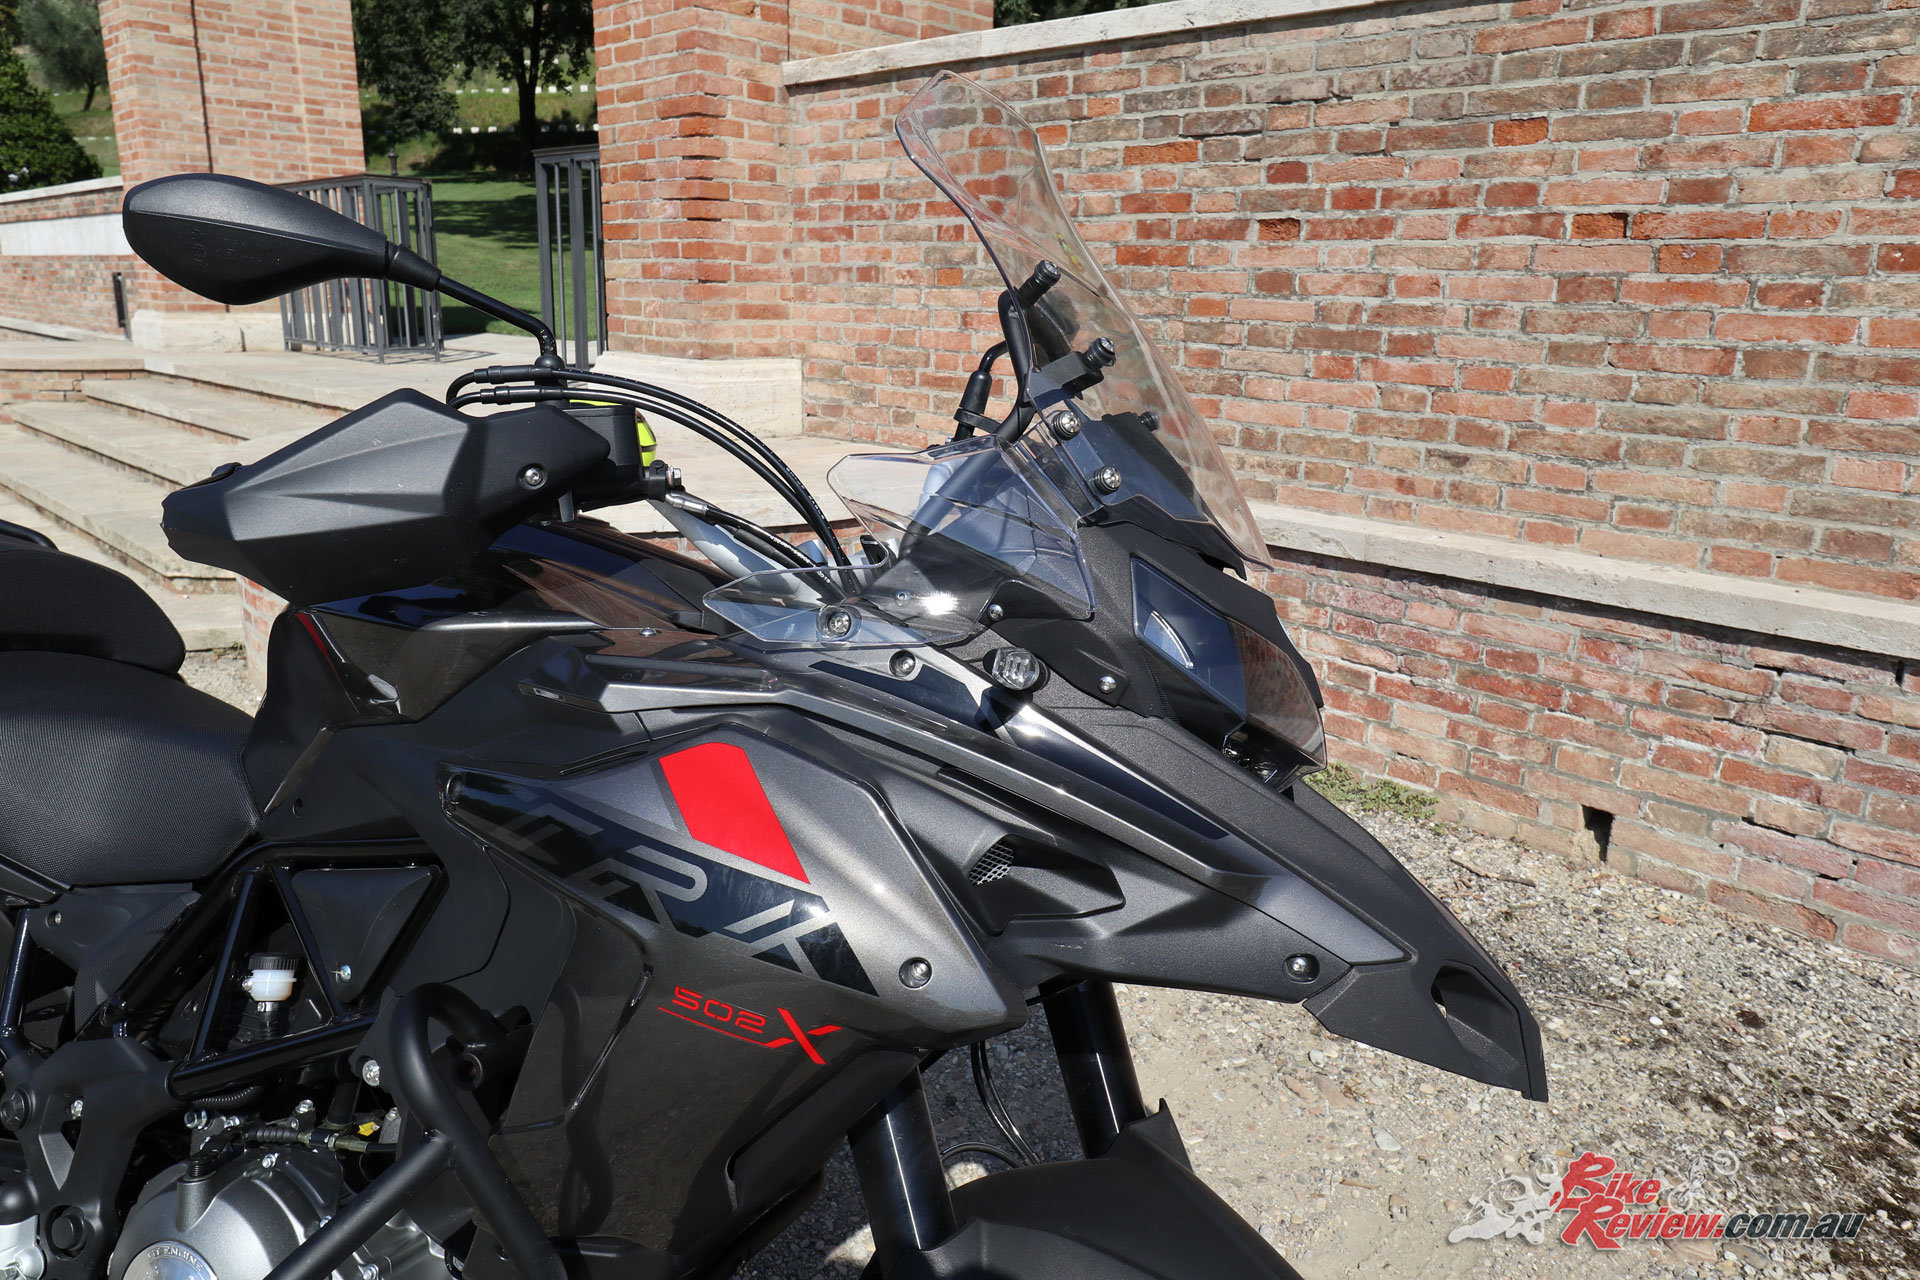 2018 Benelli TRK 502X - The bike really looks the business with a sporty front end and great overall styling.